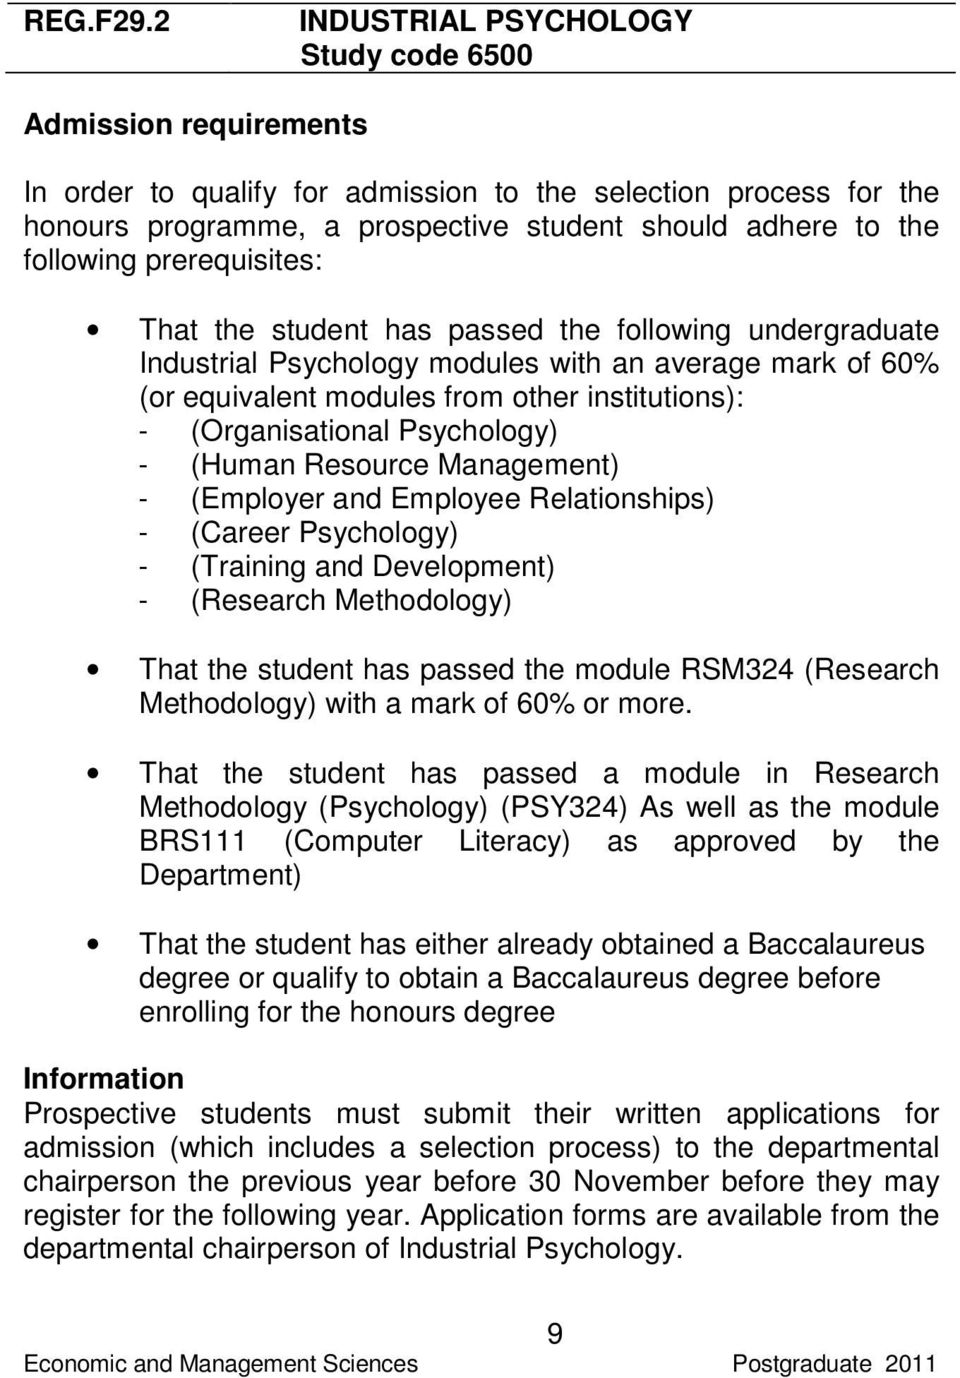 following prerequisites: That the student has passed the following undergraduate Industrial Psychology modules with an average mark of 60% (or equivalent modules from other institutions): -